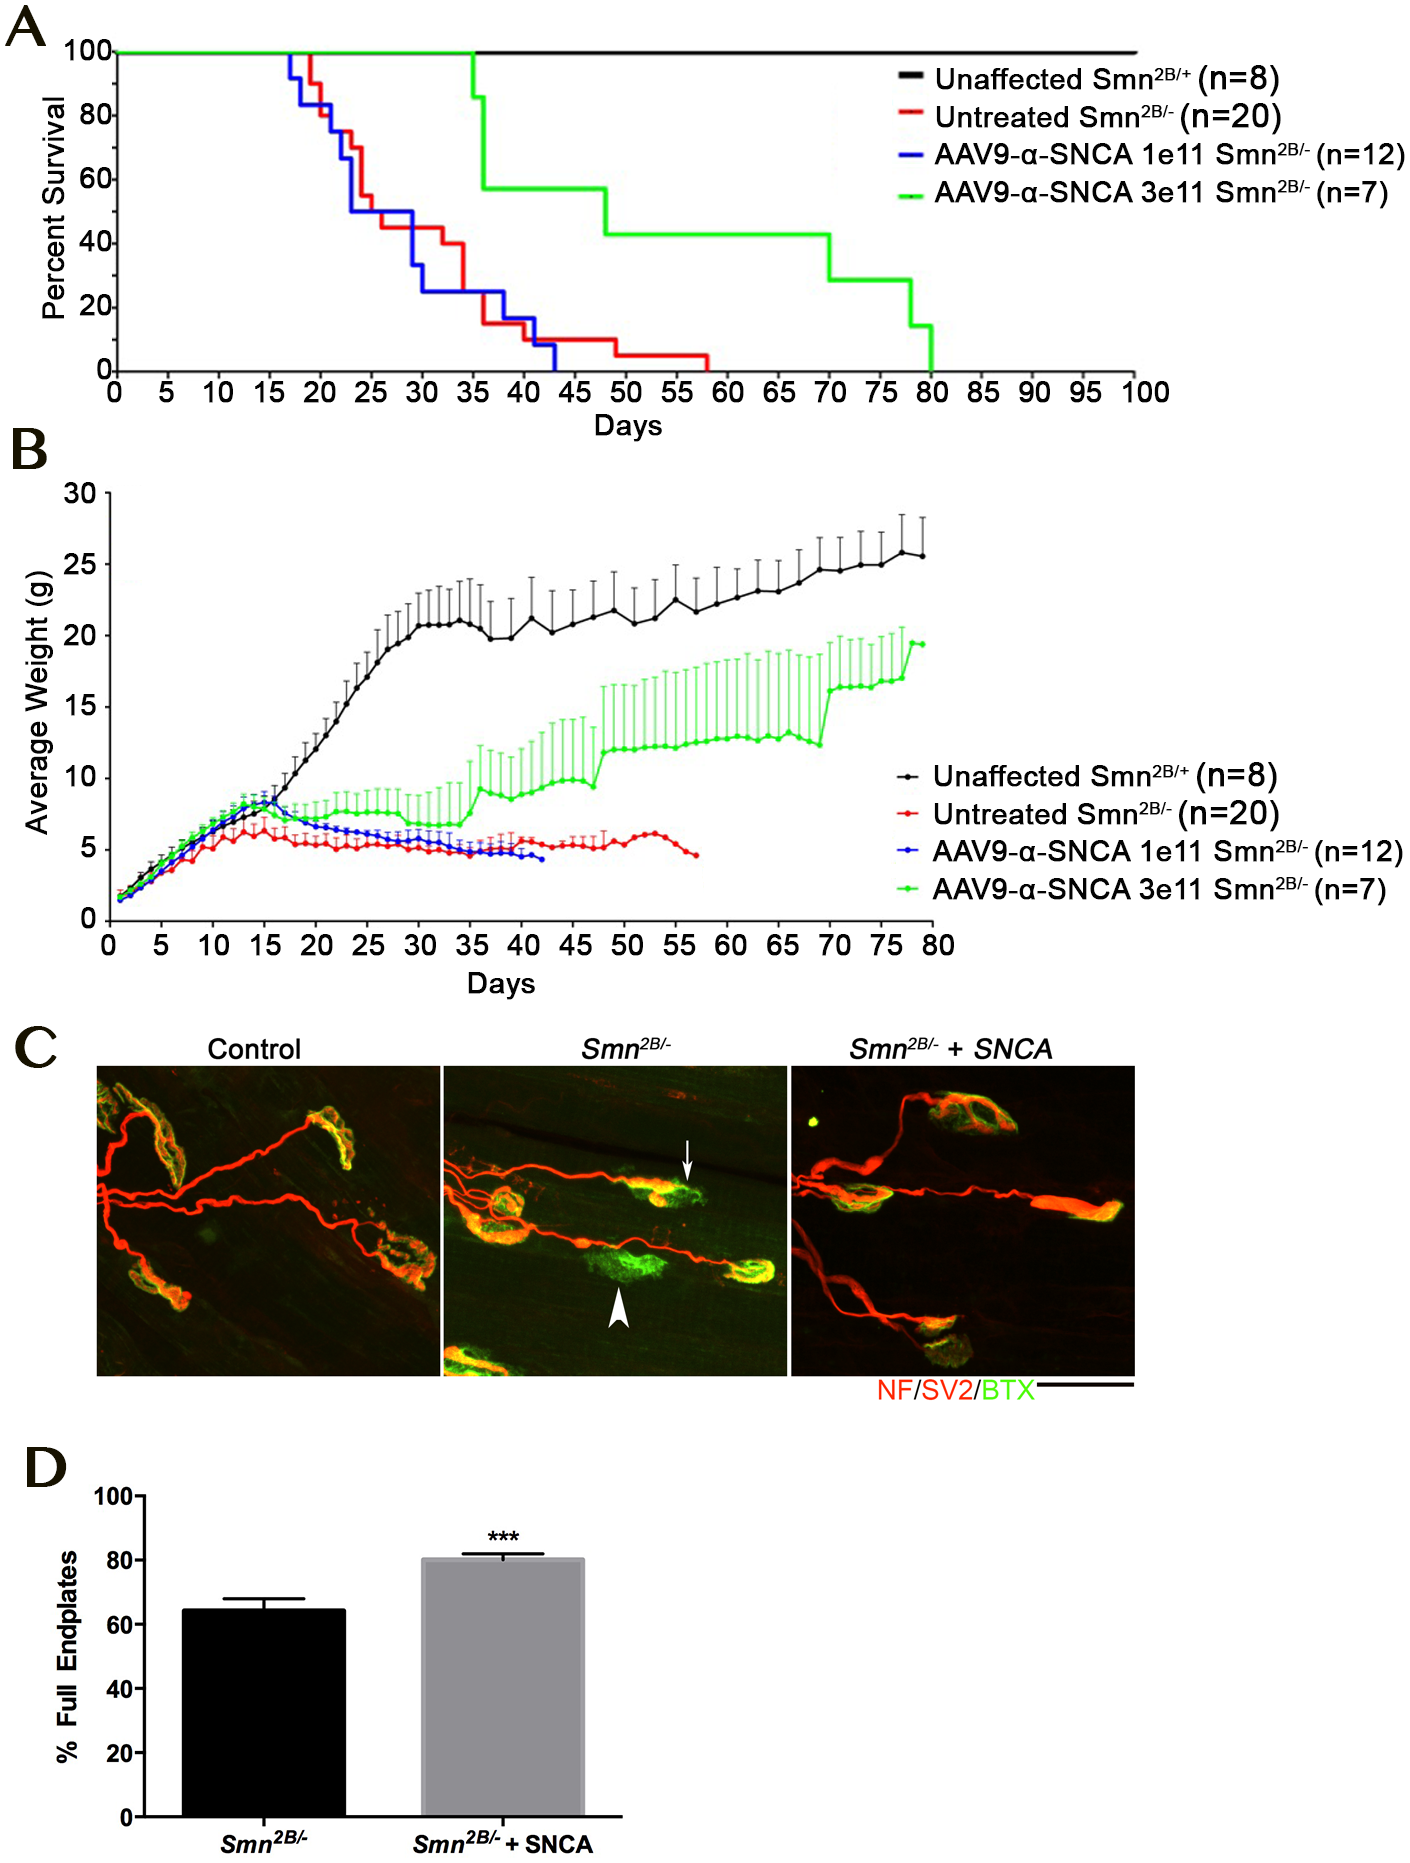 Overexpression of SNCA ameliorate phenotype and neuromuscular junction pathology in the <i>Smn</i><sup><i>2B/-</i></sup> mouse model of SMA.